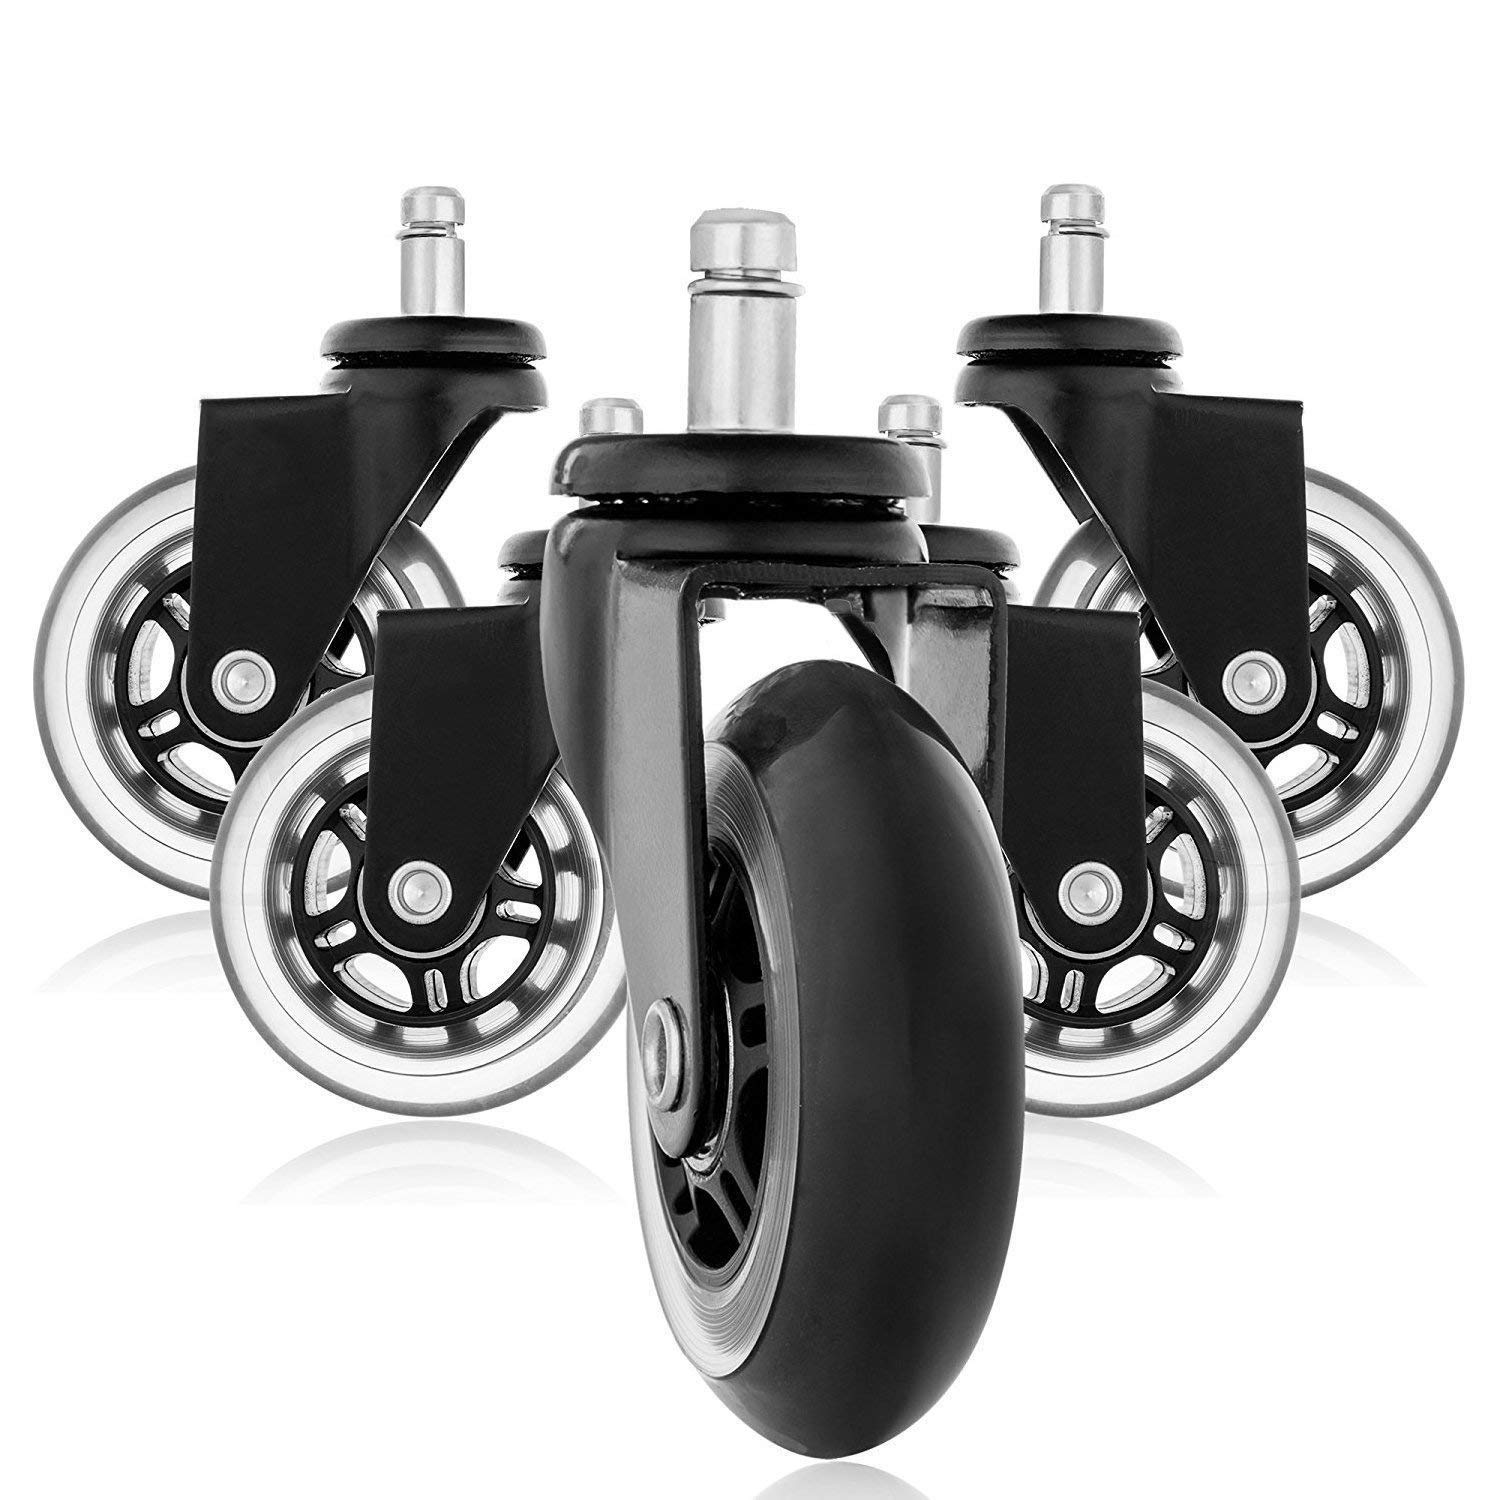 SODIAL Replacement Wheels, Office Chair Caster Wheels for Your Desk Chair, Quiet Rolling Casters Perfect for Hardwood Floors, Carpet, Laminate and Tile - Set of 5